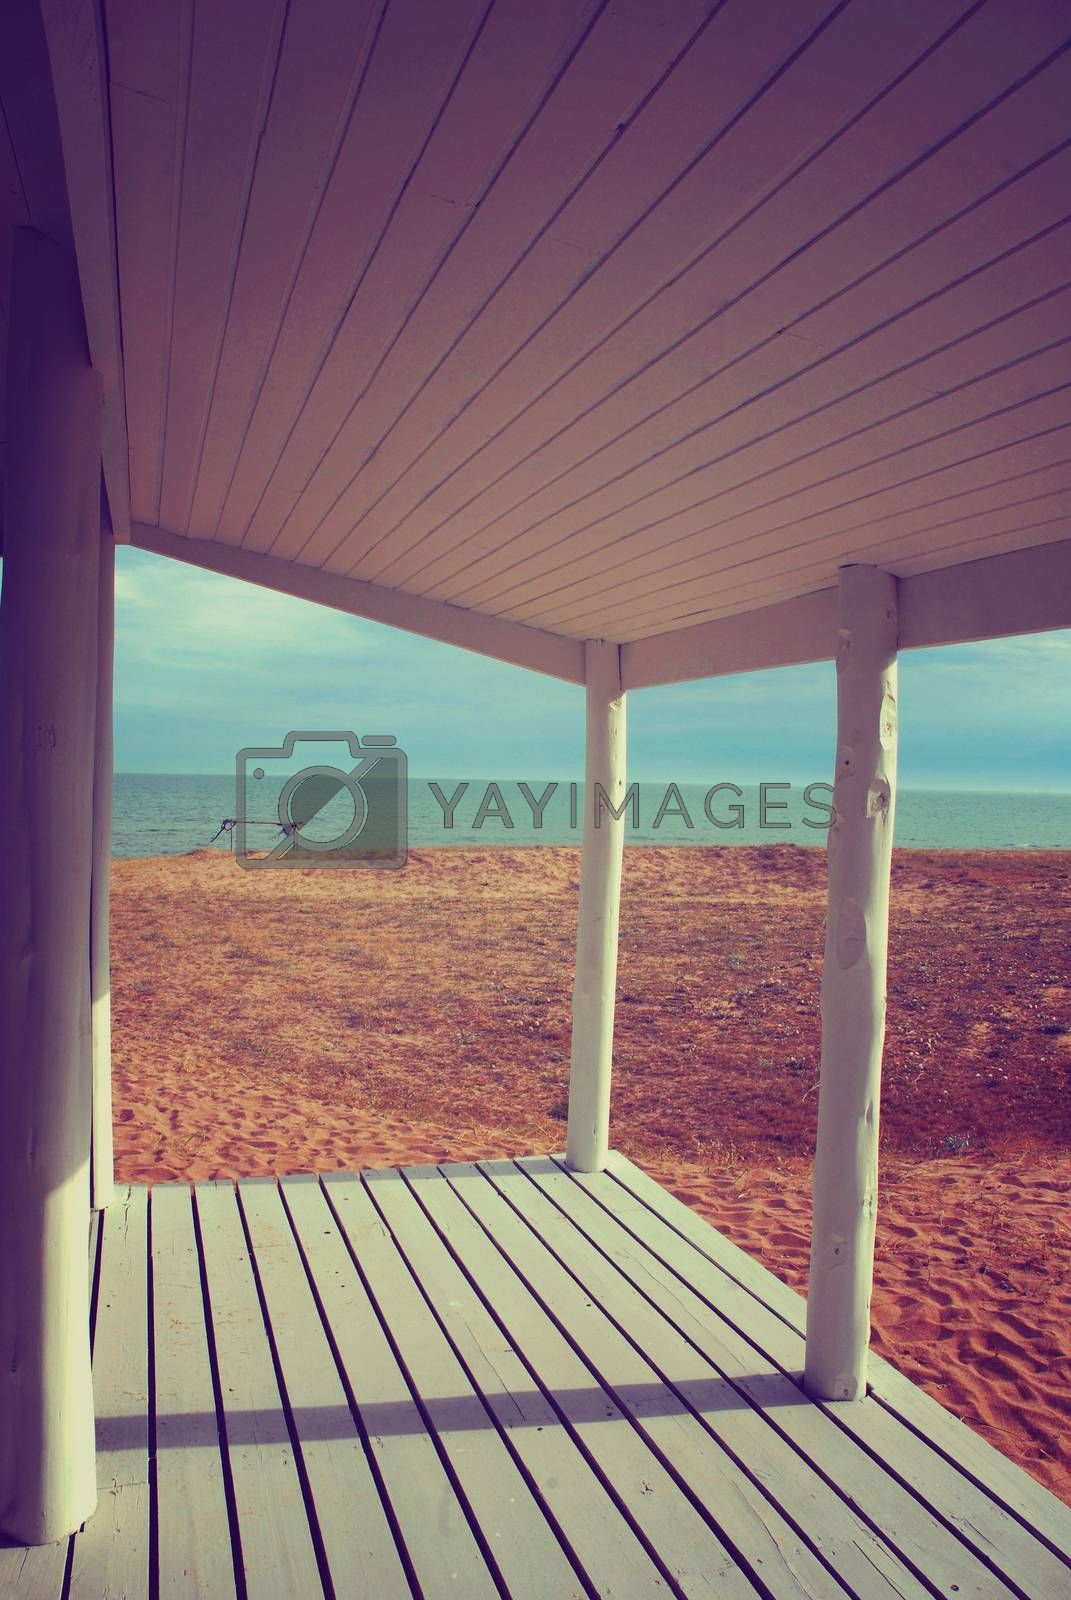 White beach house porch with vintage style filter effect and ocean view background.